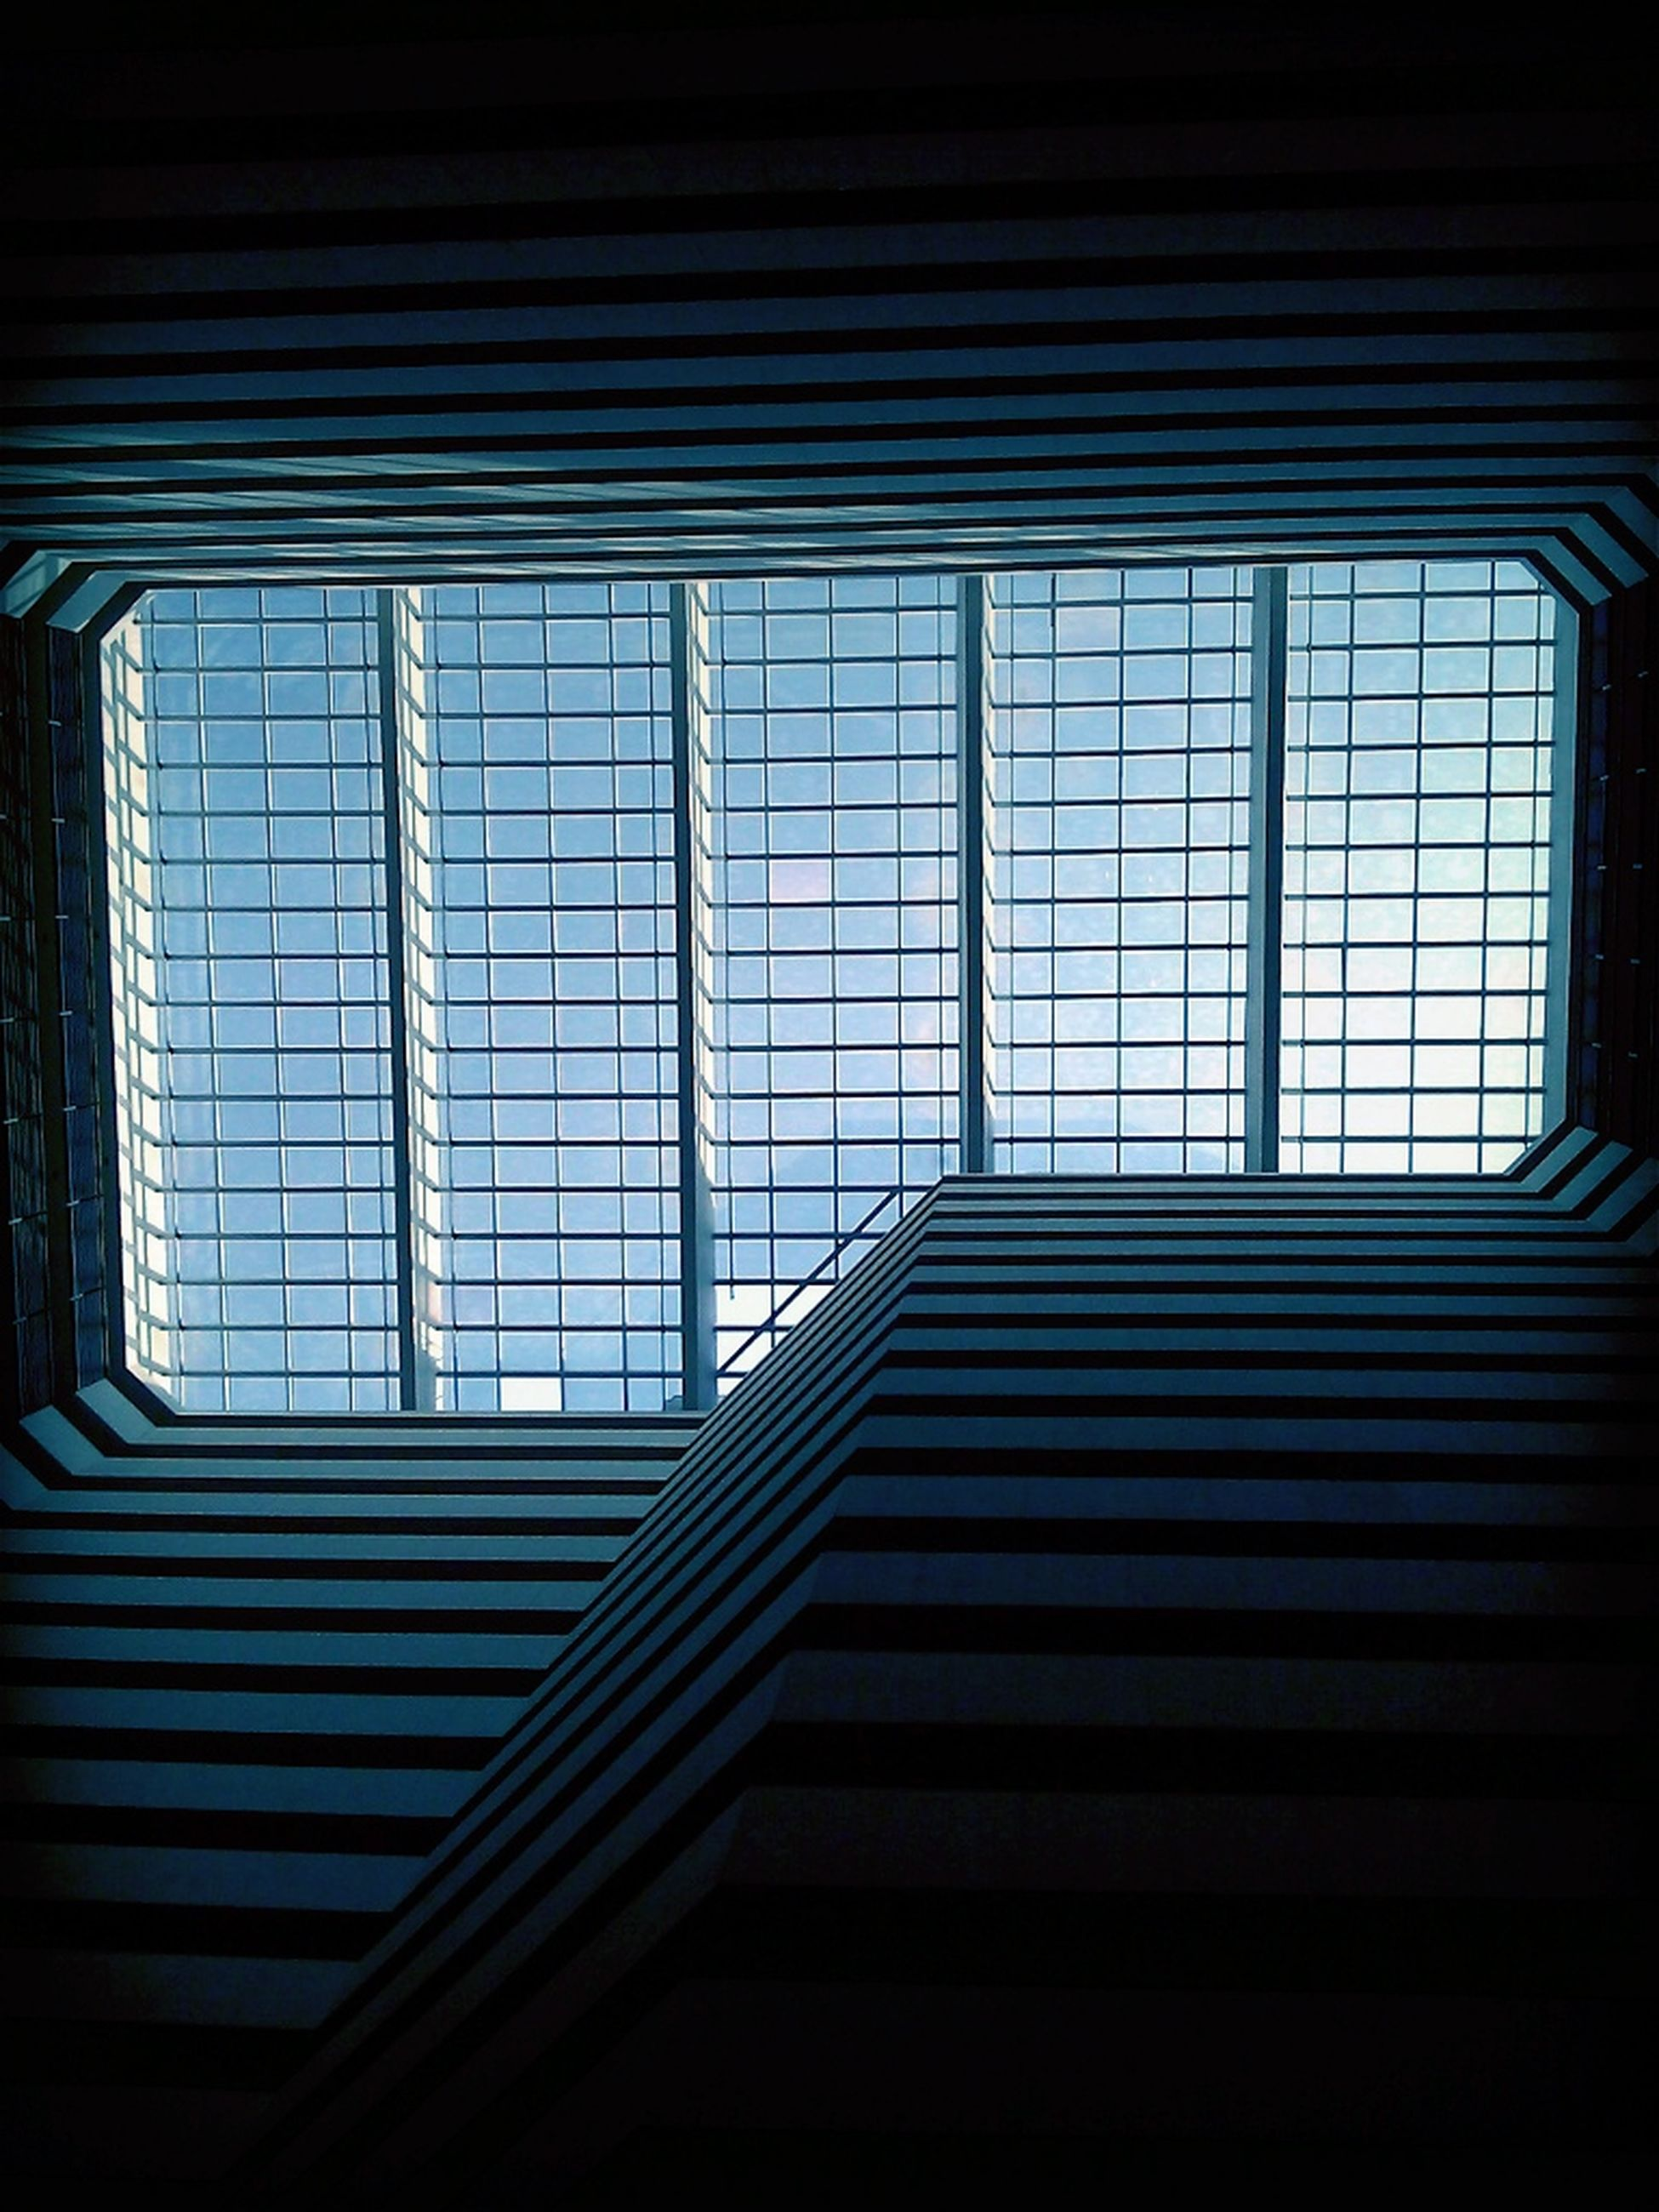 indoors, window, architecture, built structure, low angle view, pattern, building, glass - material, closed, railing, steps, staircase, no people, building exterior, house, dark, sunlight, day, steps and staircases, blinds